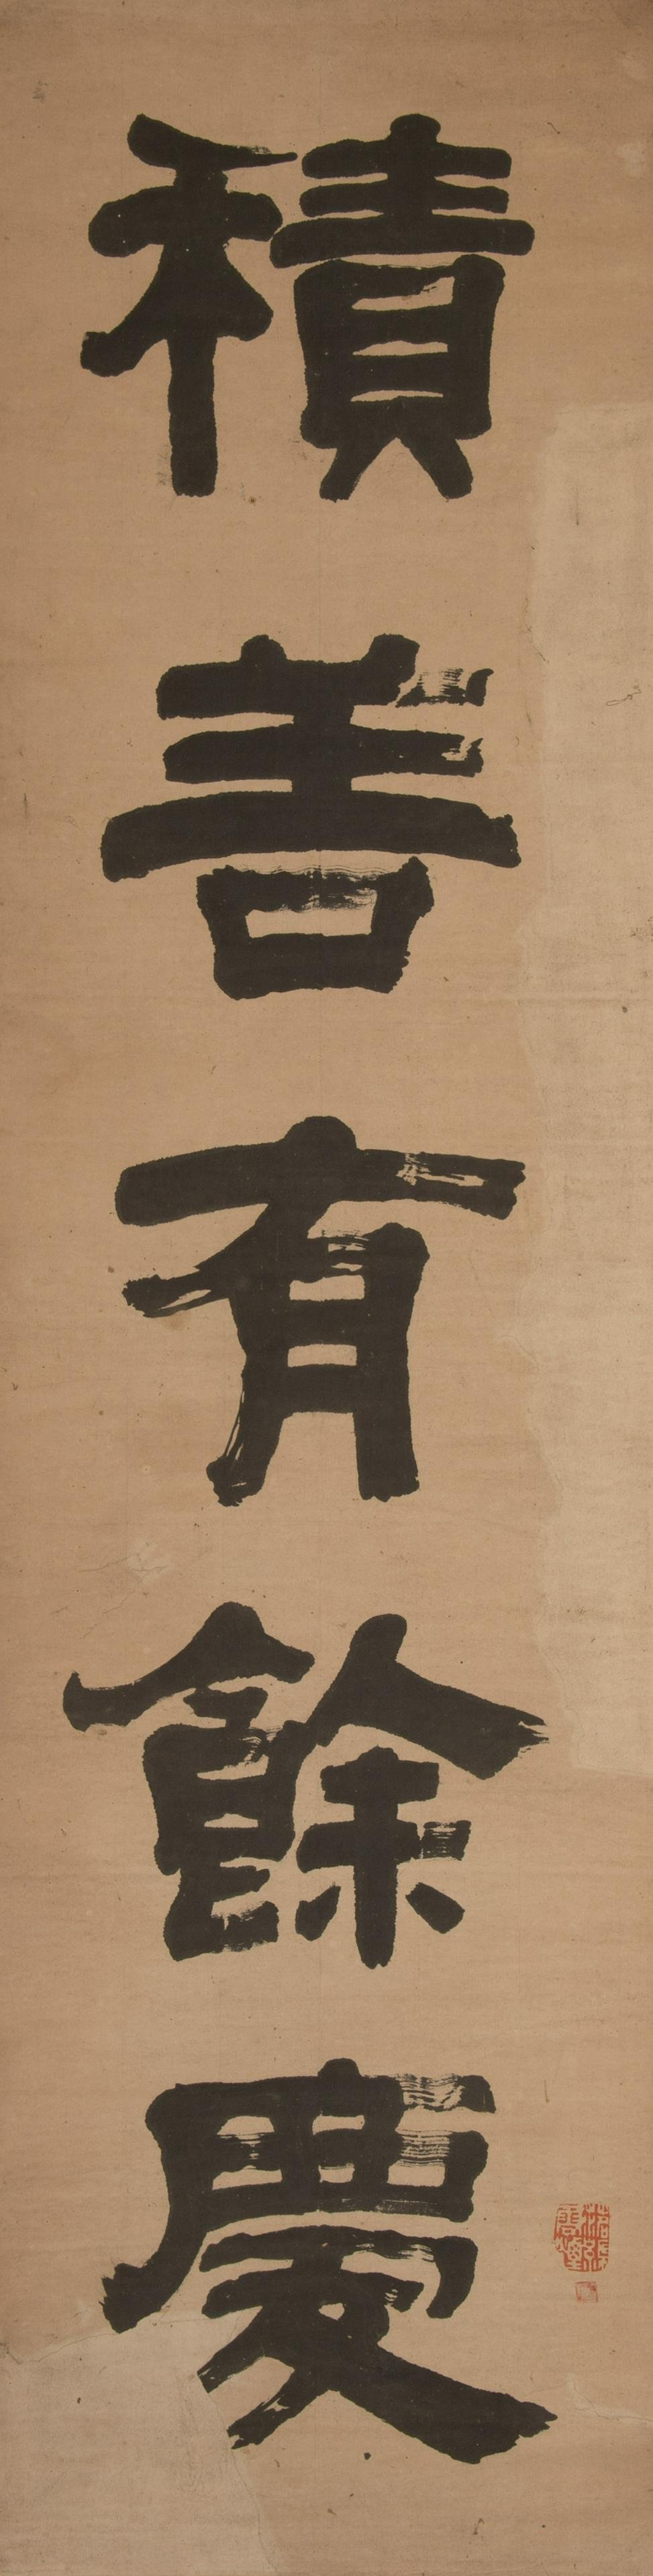 Calligraphy Couplet by Pan Dengyun